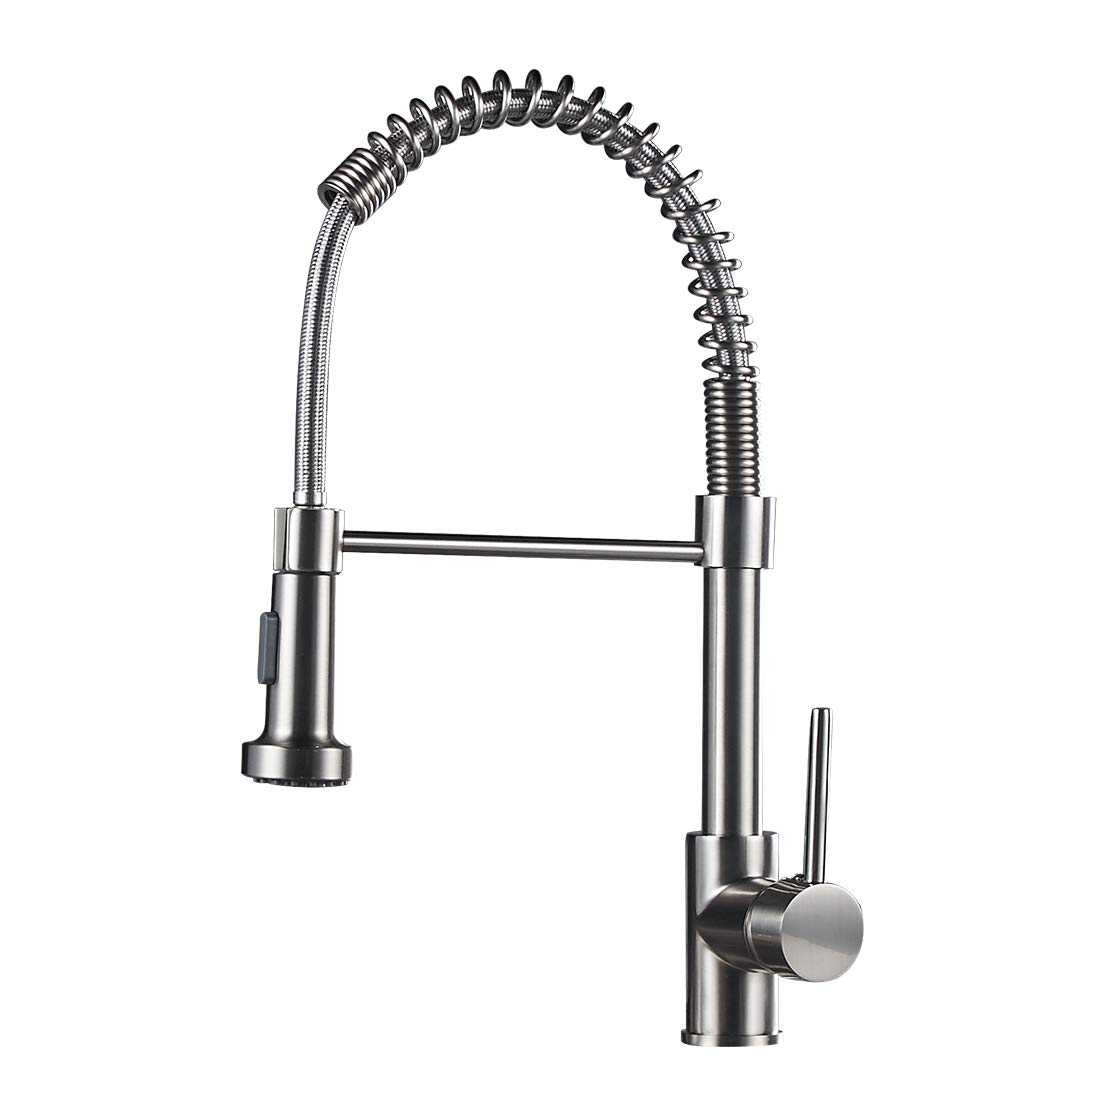 Commercial Single Handle Kitchen Faucet with Dual Function Spring Stainless Steel Kitchen Sink Faucets with Pull down Sprayer, Brushed Nickel Finish